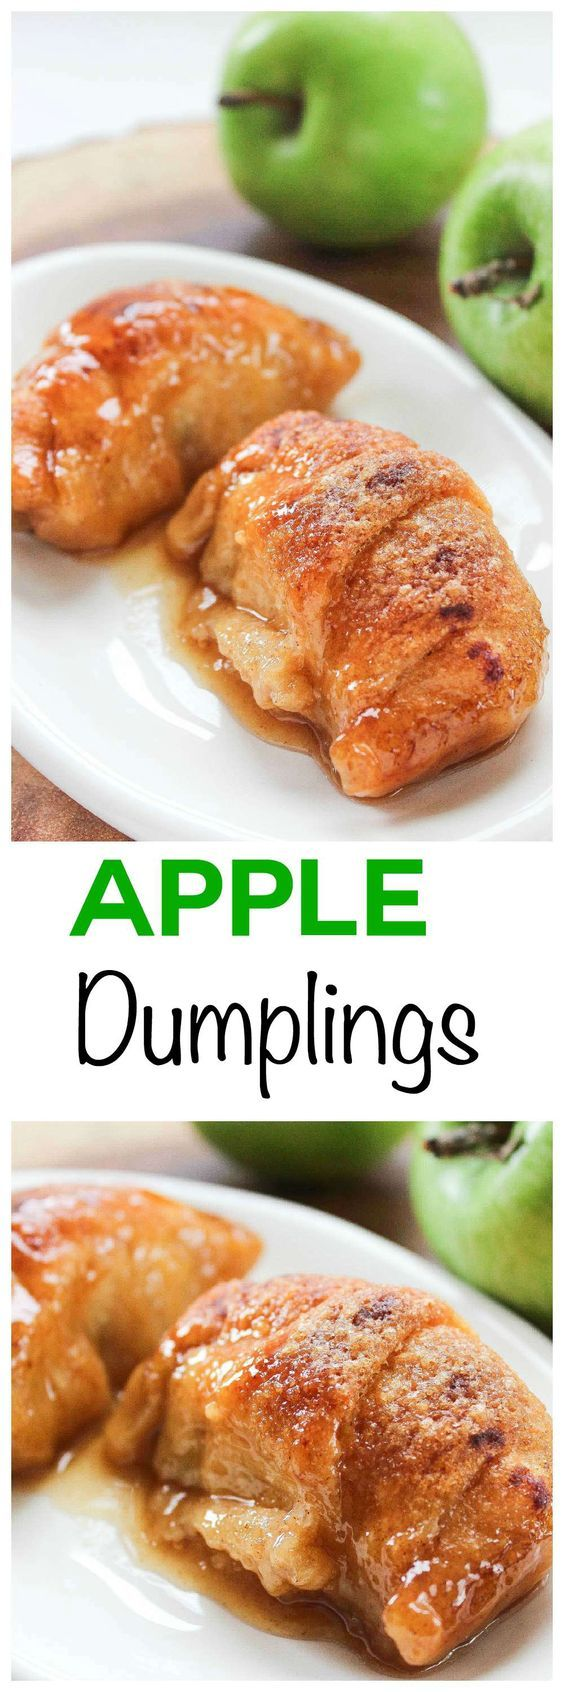 Apple dumpling recipe easy